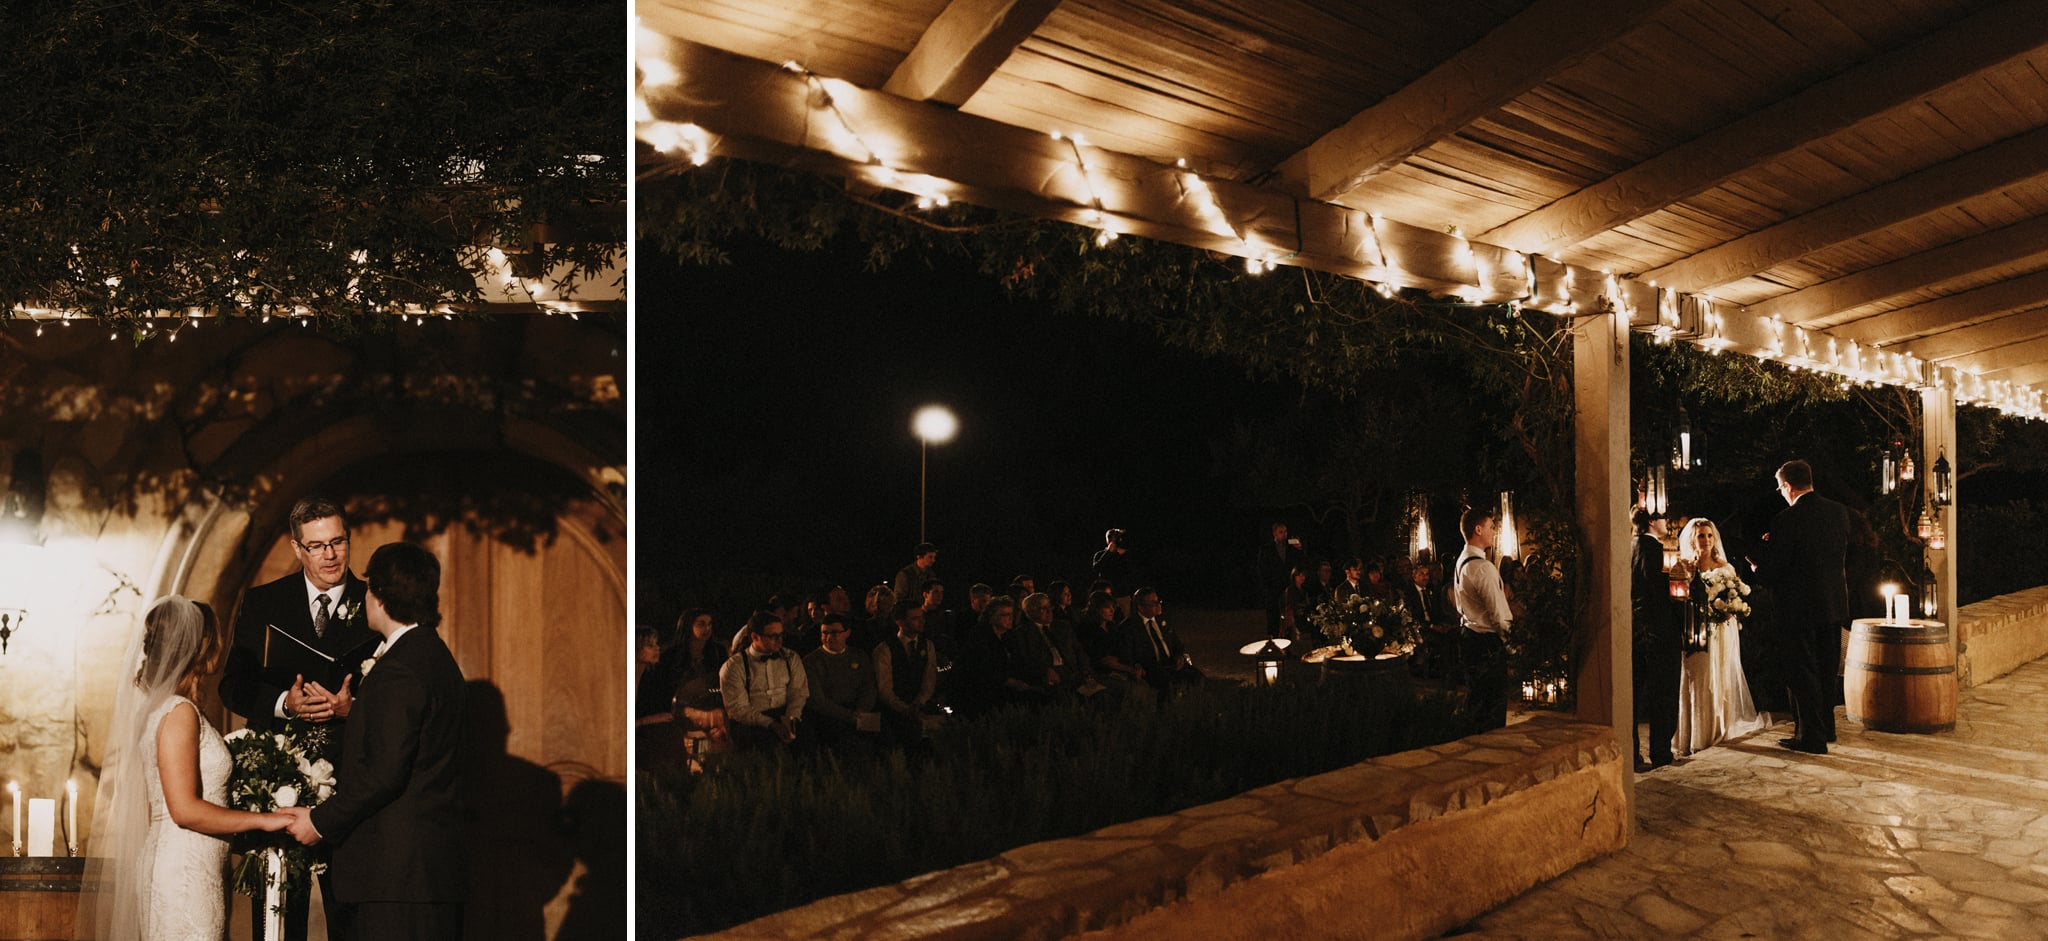 outdoor-candlelight-wedding-ceremony